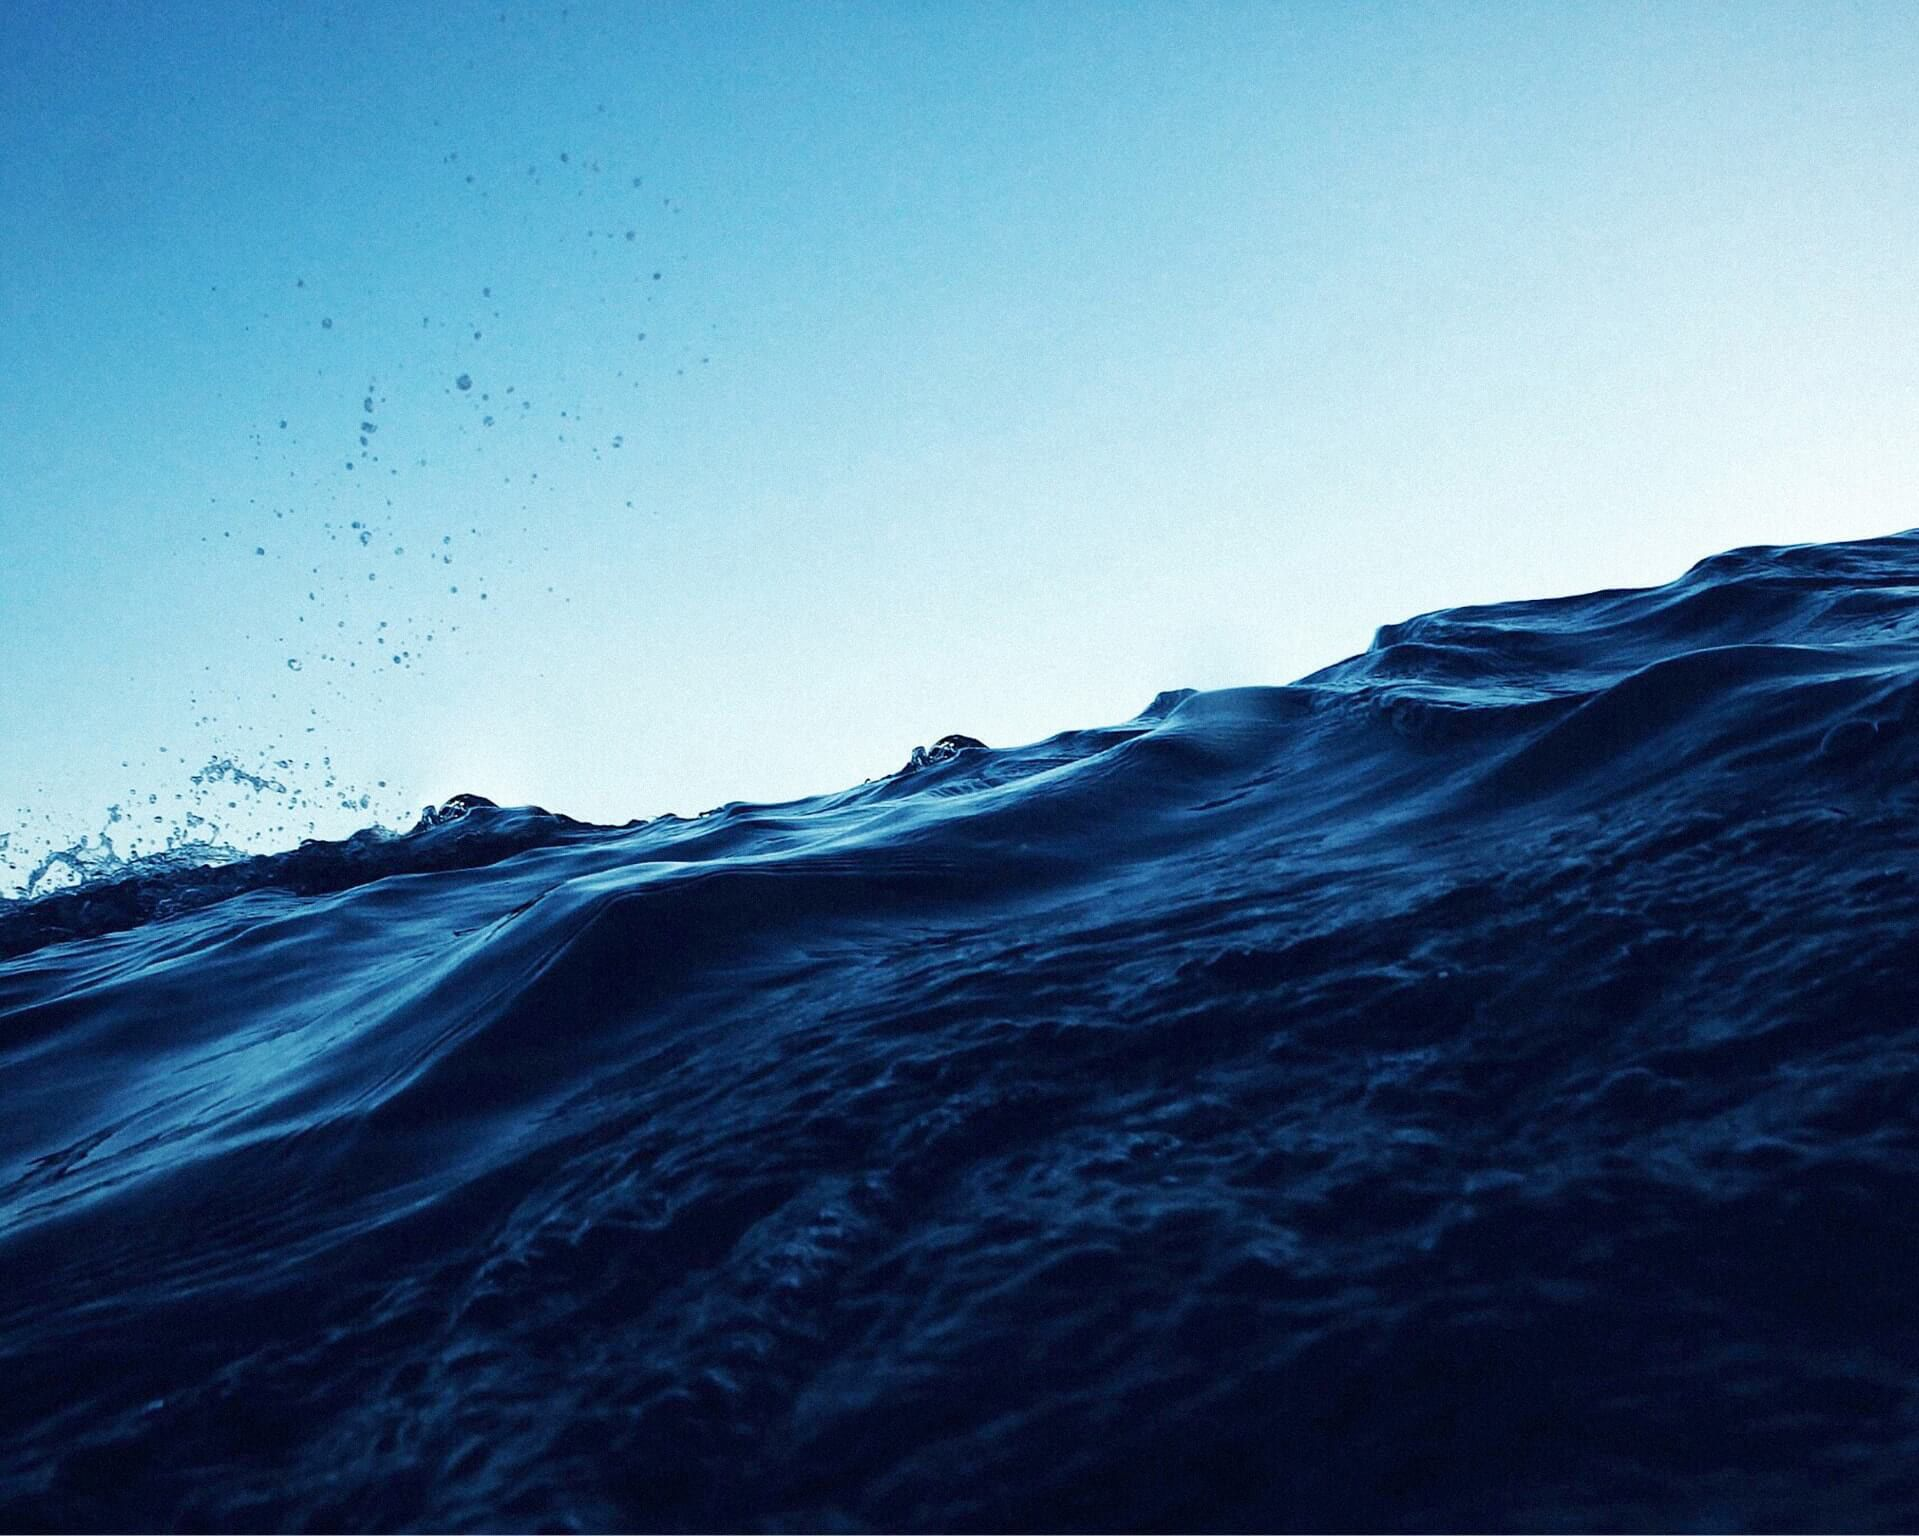 Photo of a deep blue ocean wave against the sky